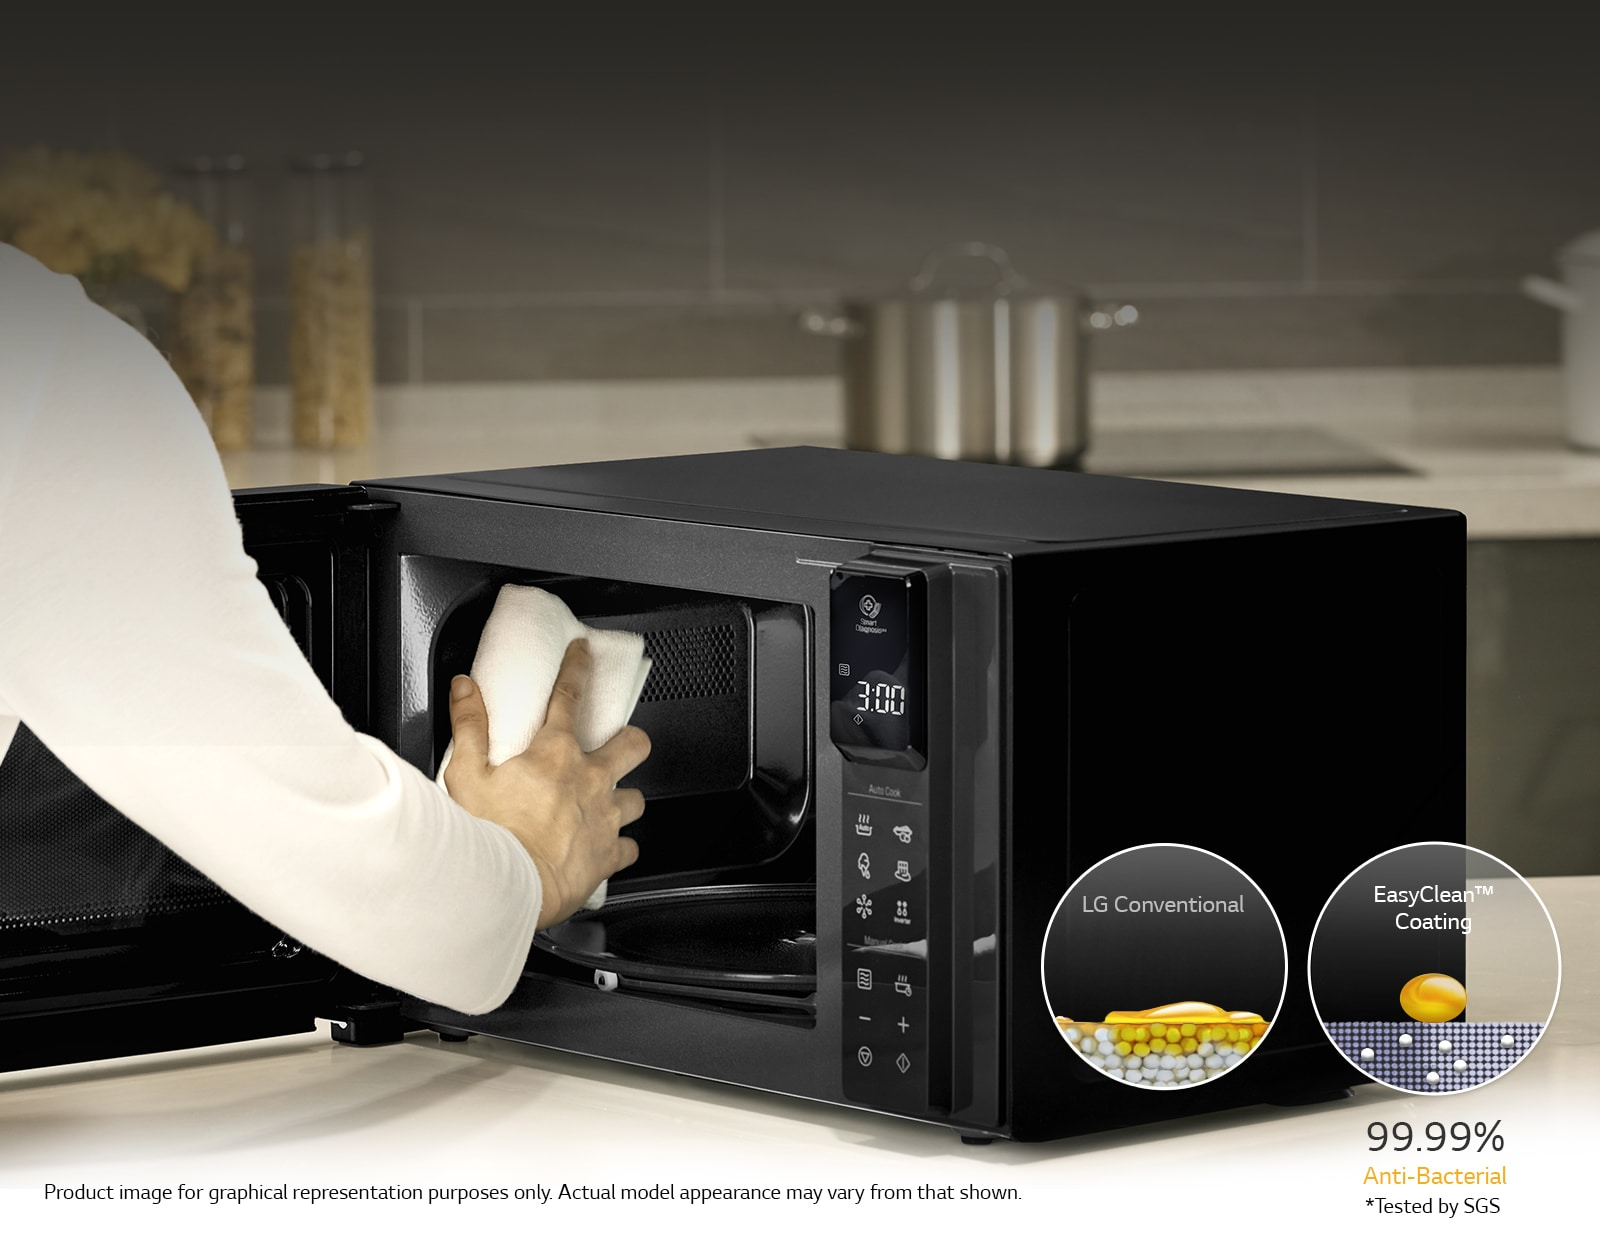 LG NeoChef, 25L Smart Inverter Microwave Oven MS2596OS